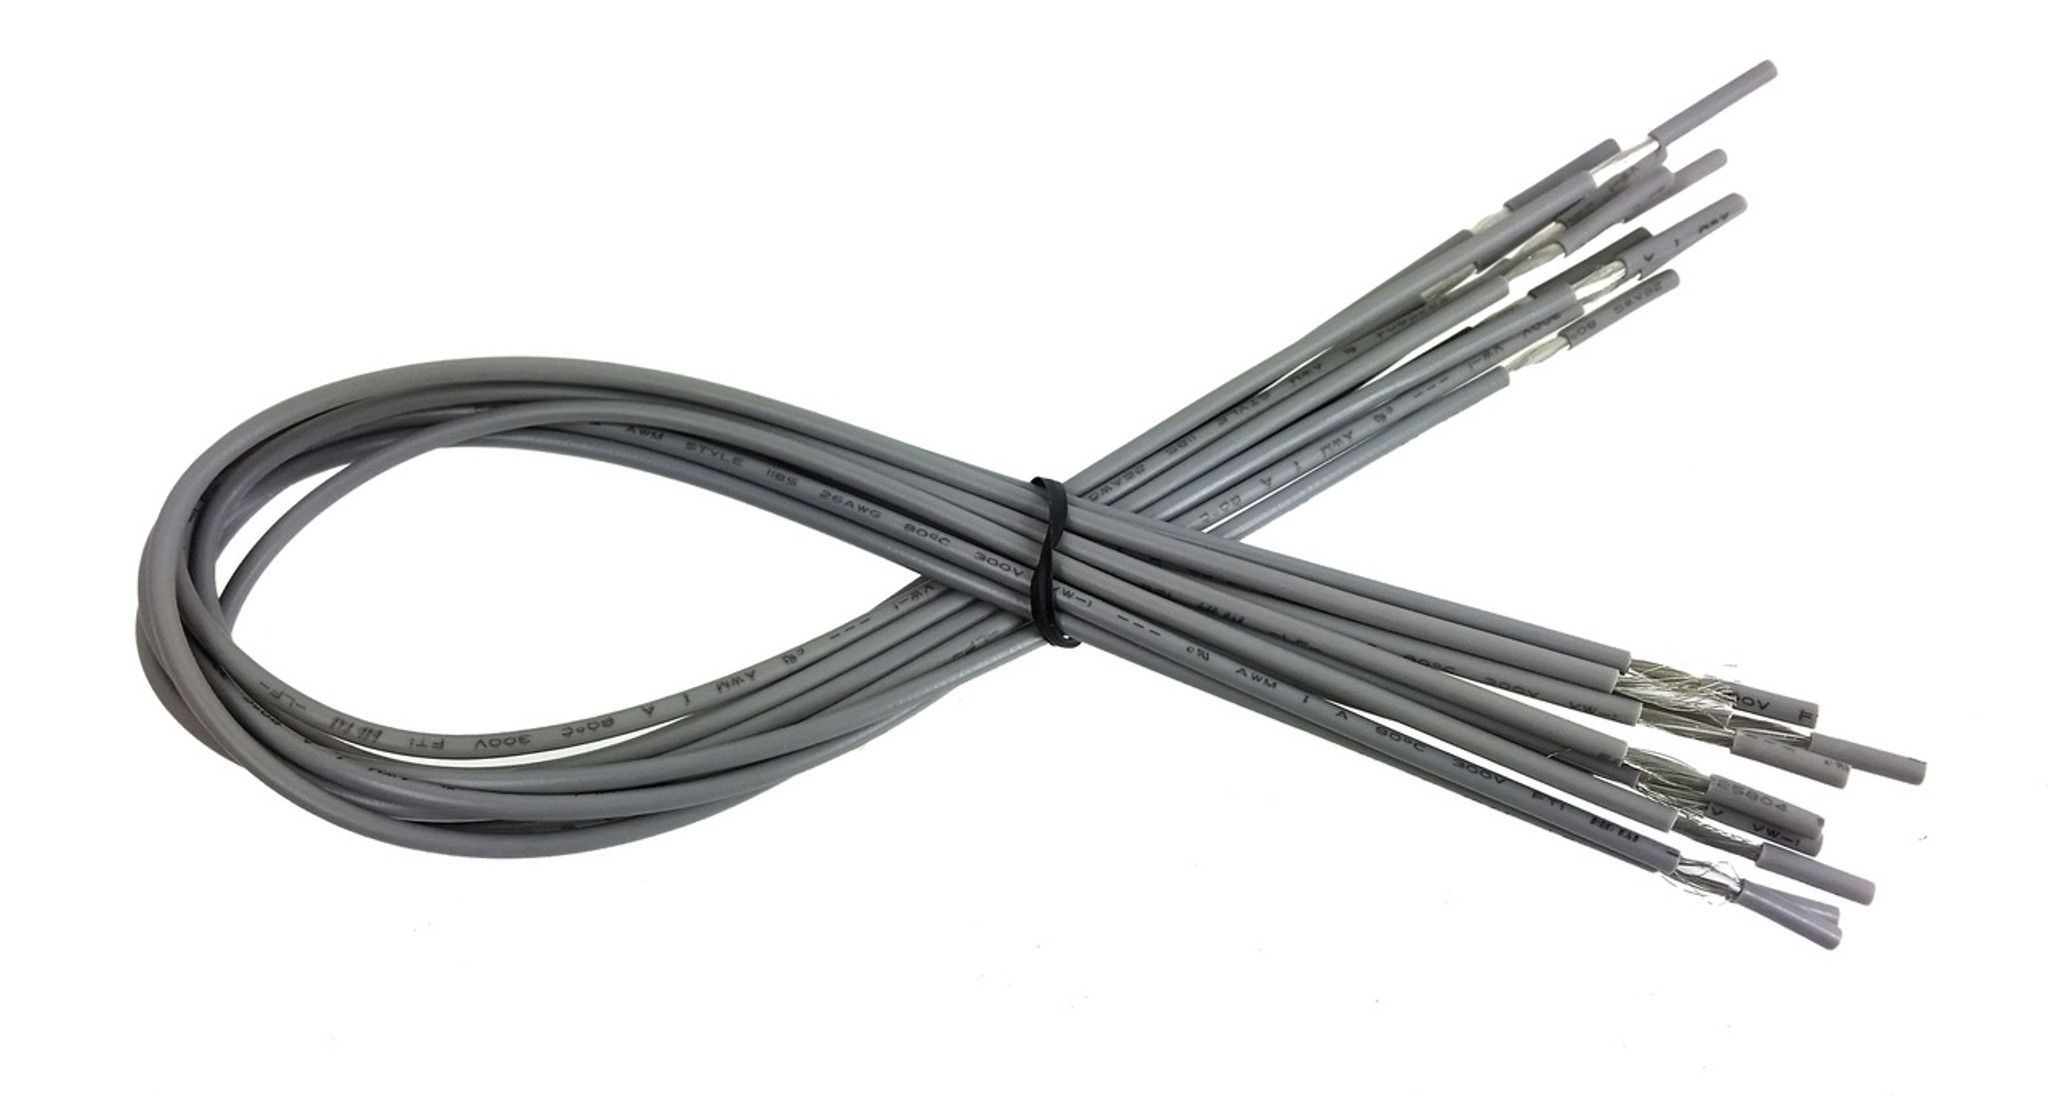 10pc. 20-inch Shielded Hookup Wires - C. B. Gitty Crafter Supply